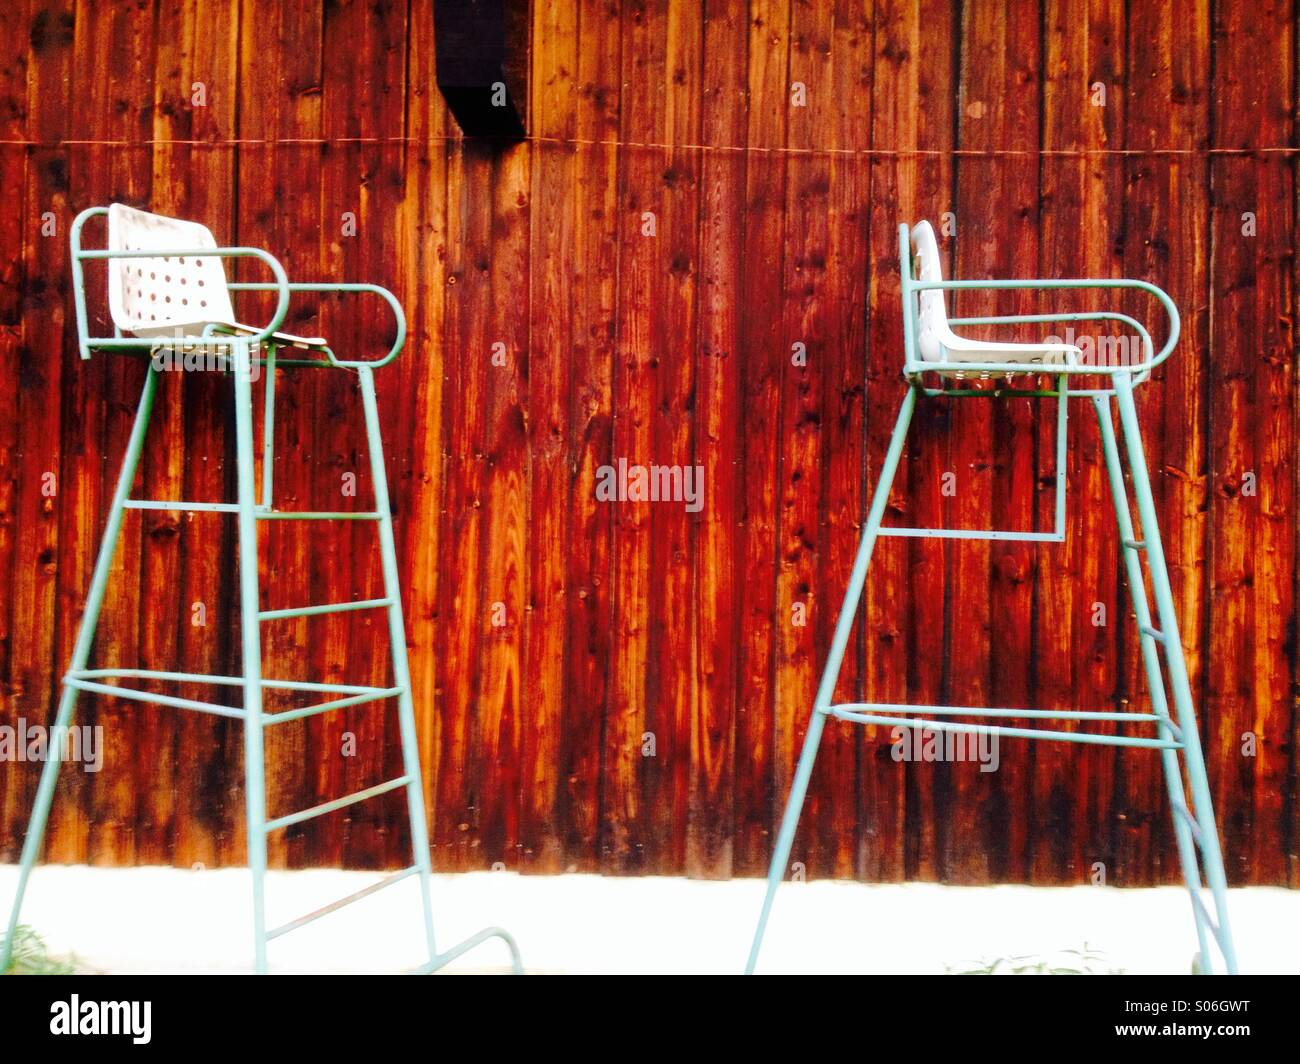 Umpire chairs at tennis club - Stock Image